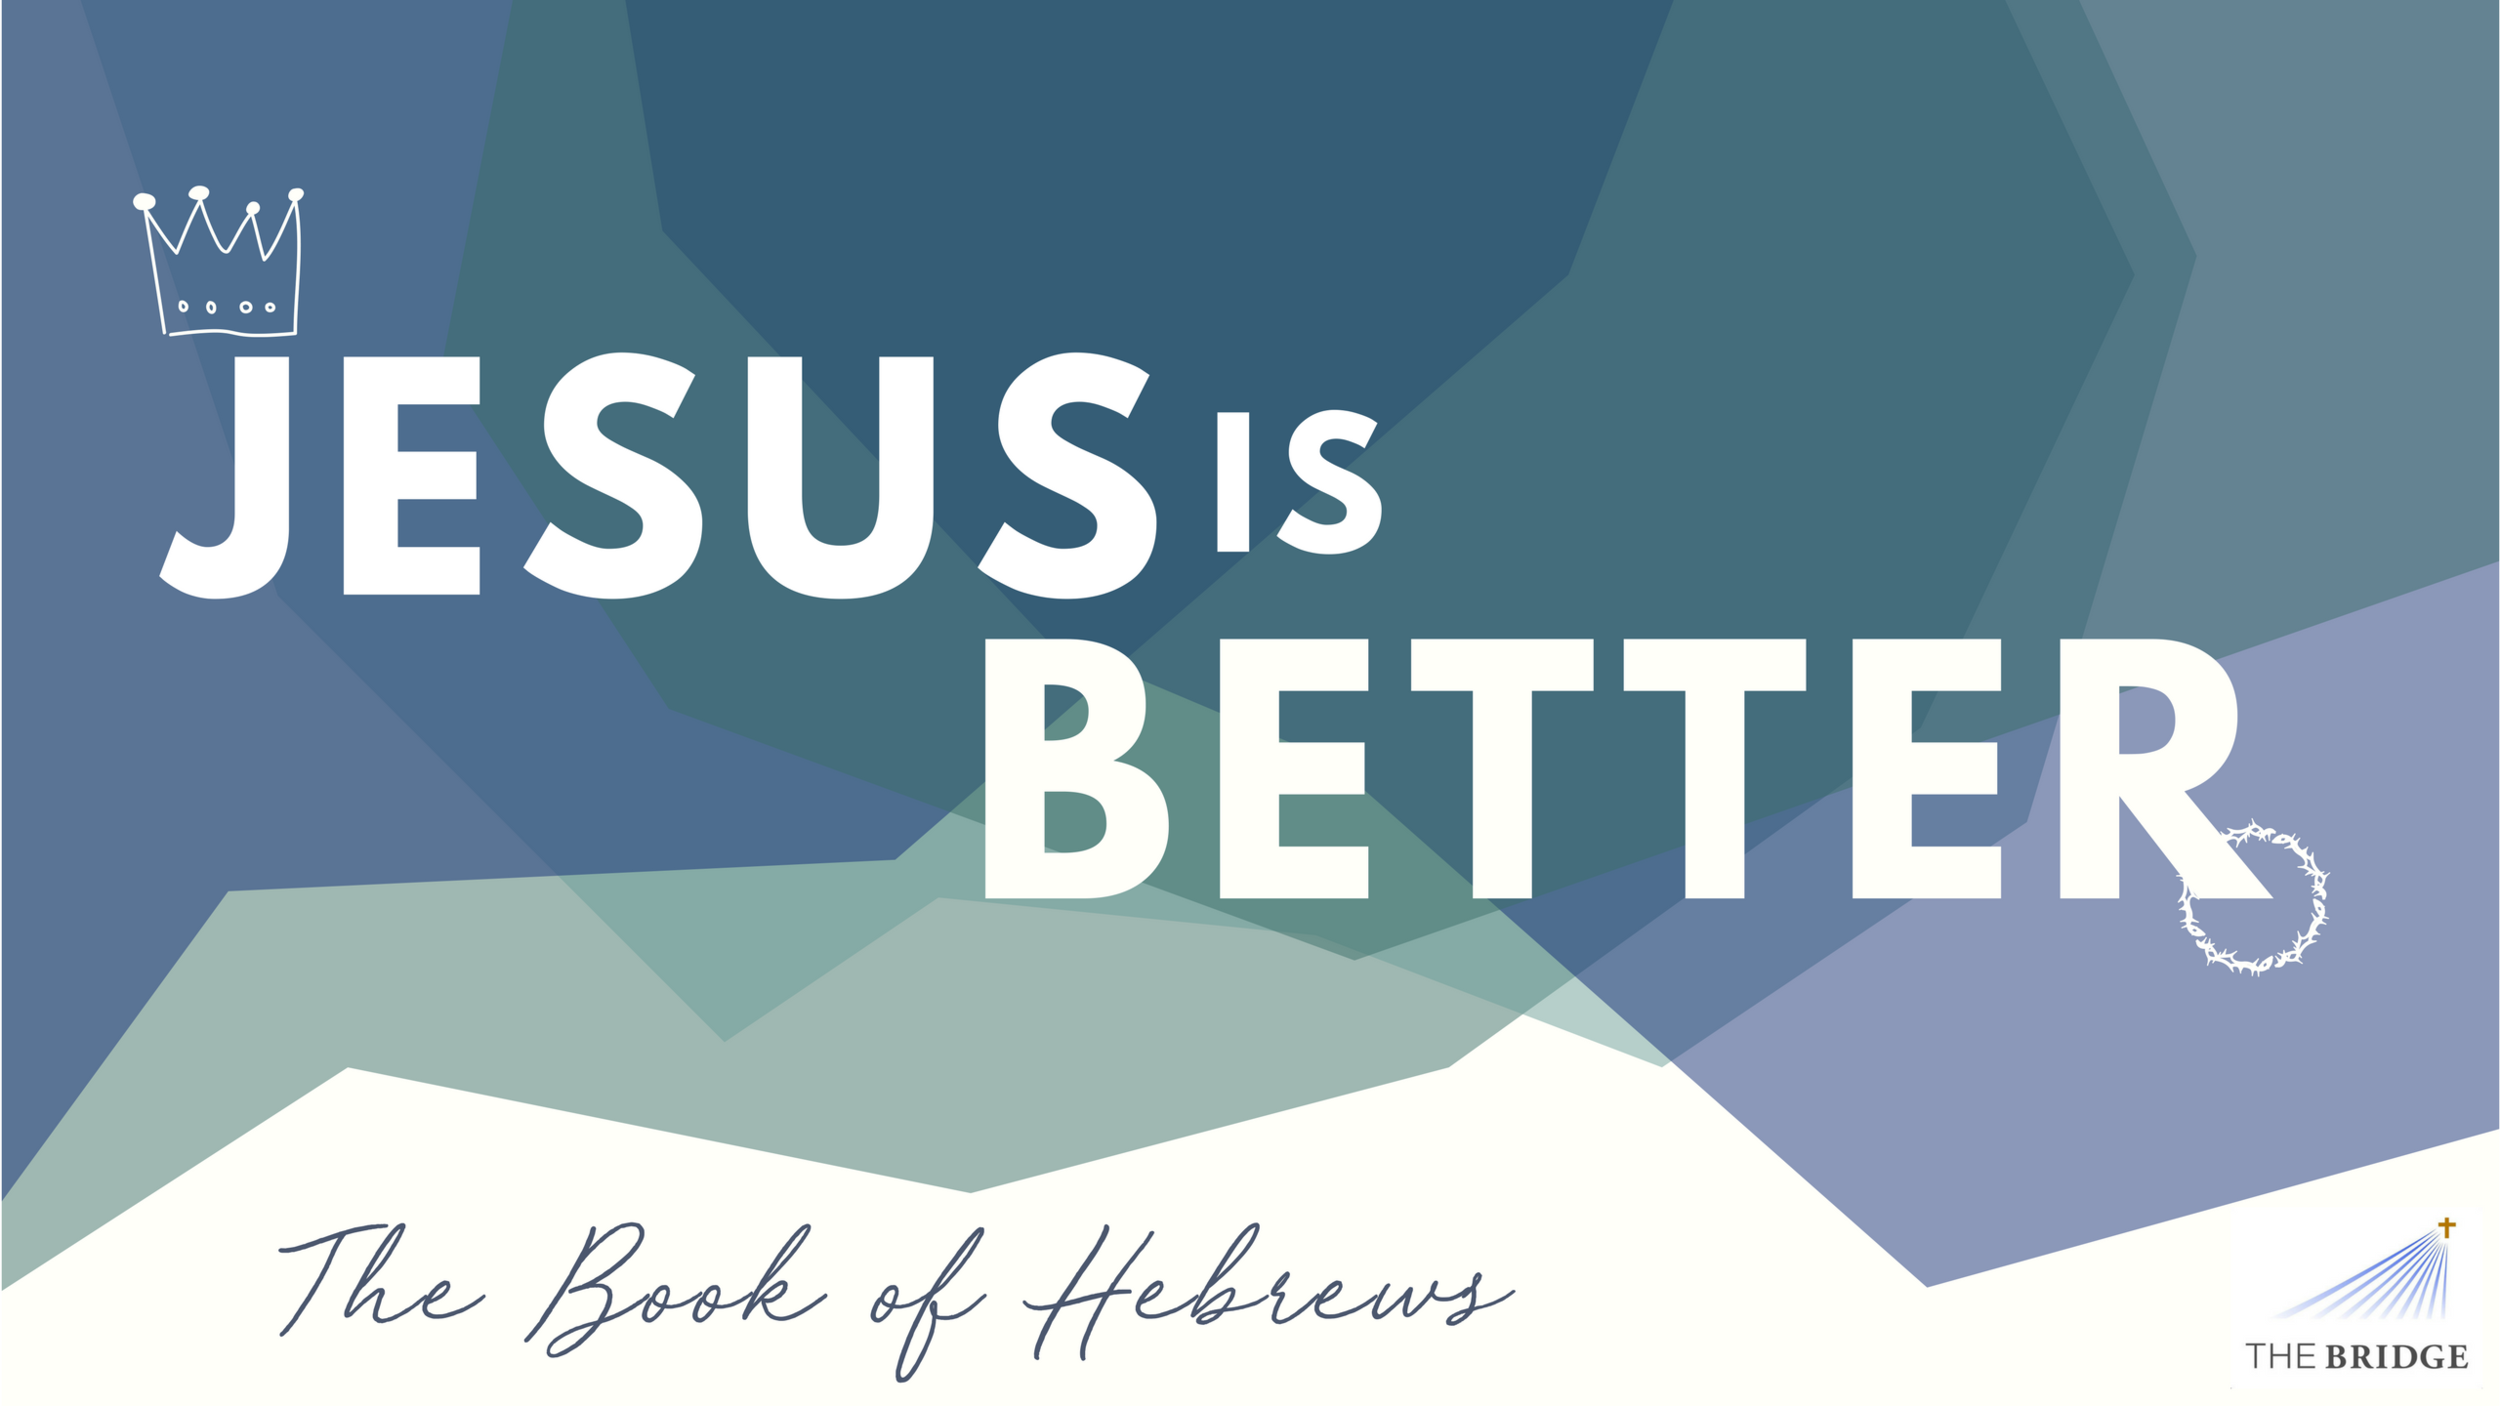 jesus is better.-3.png